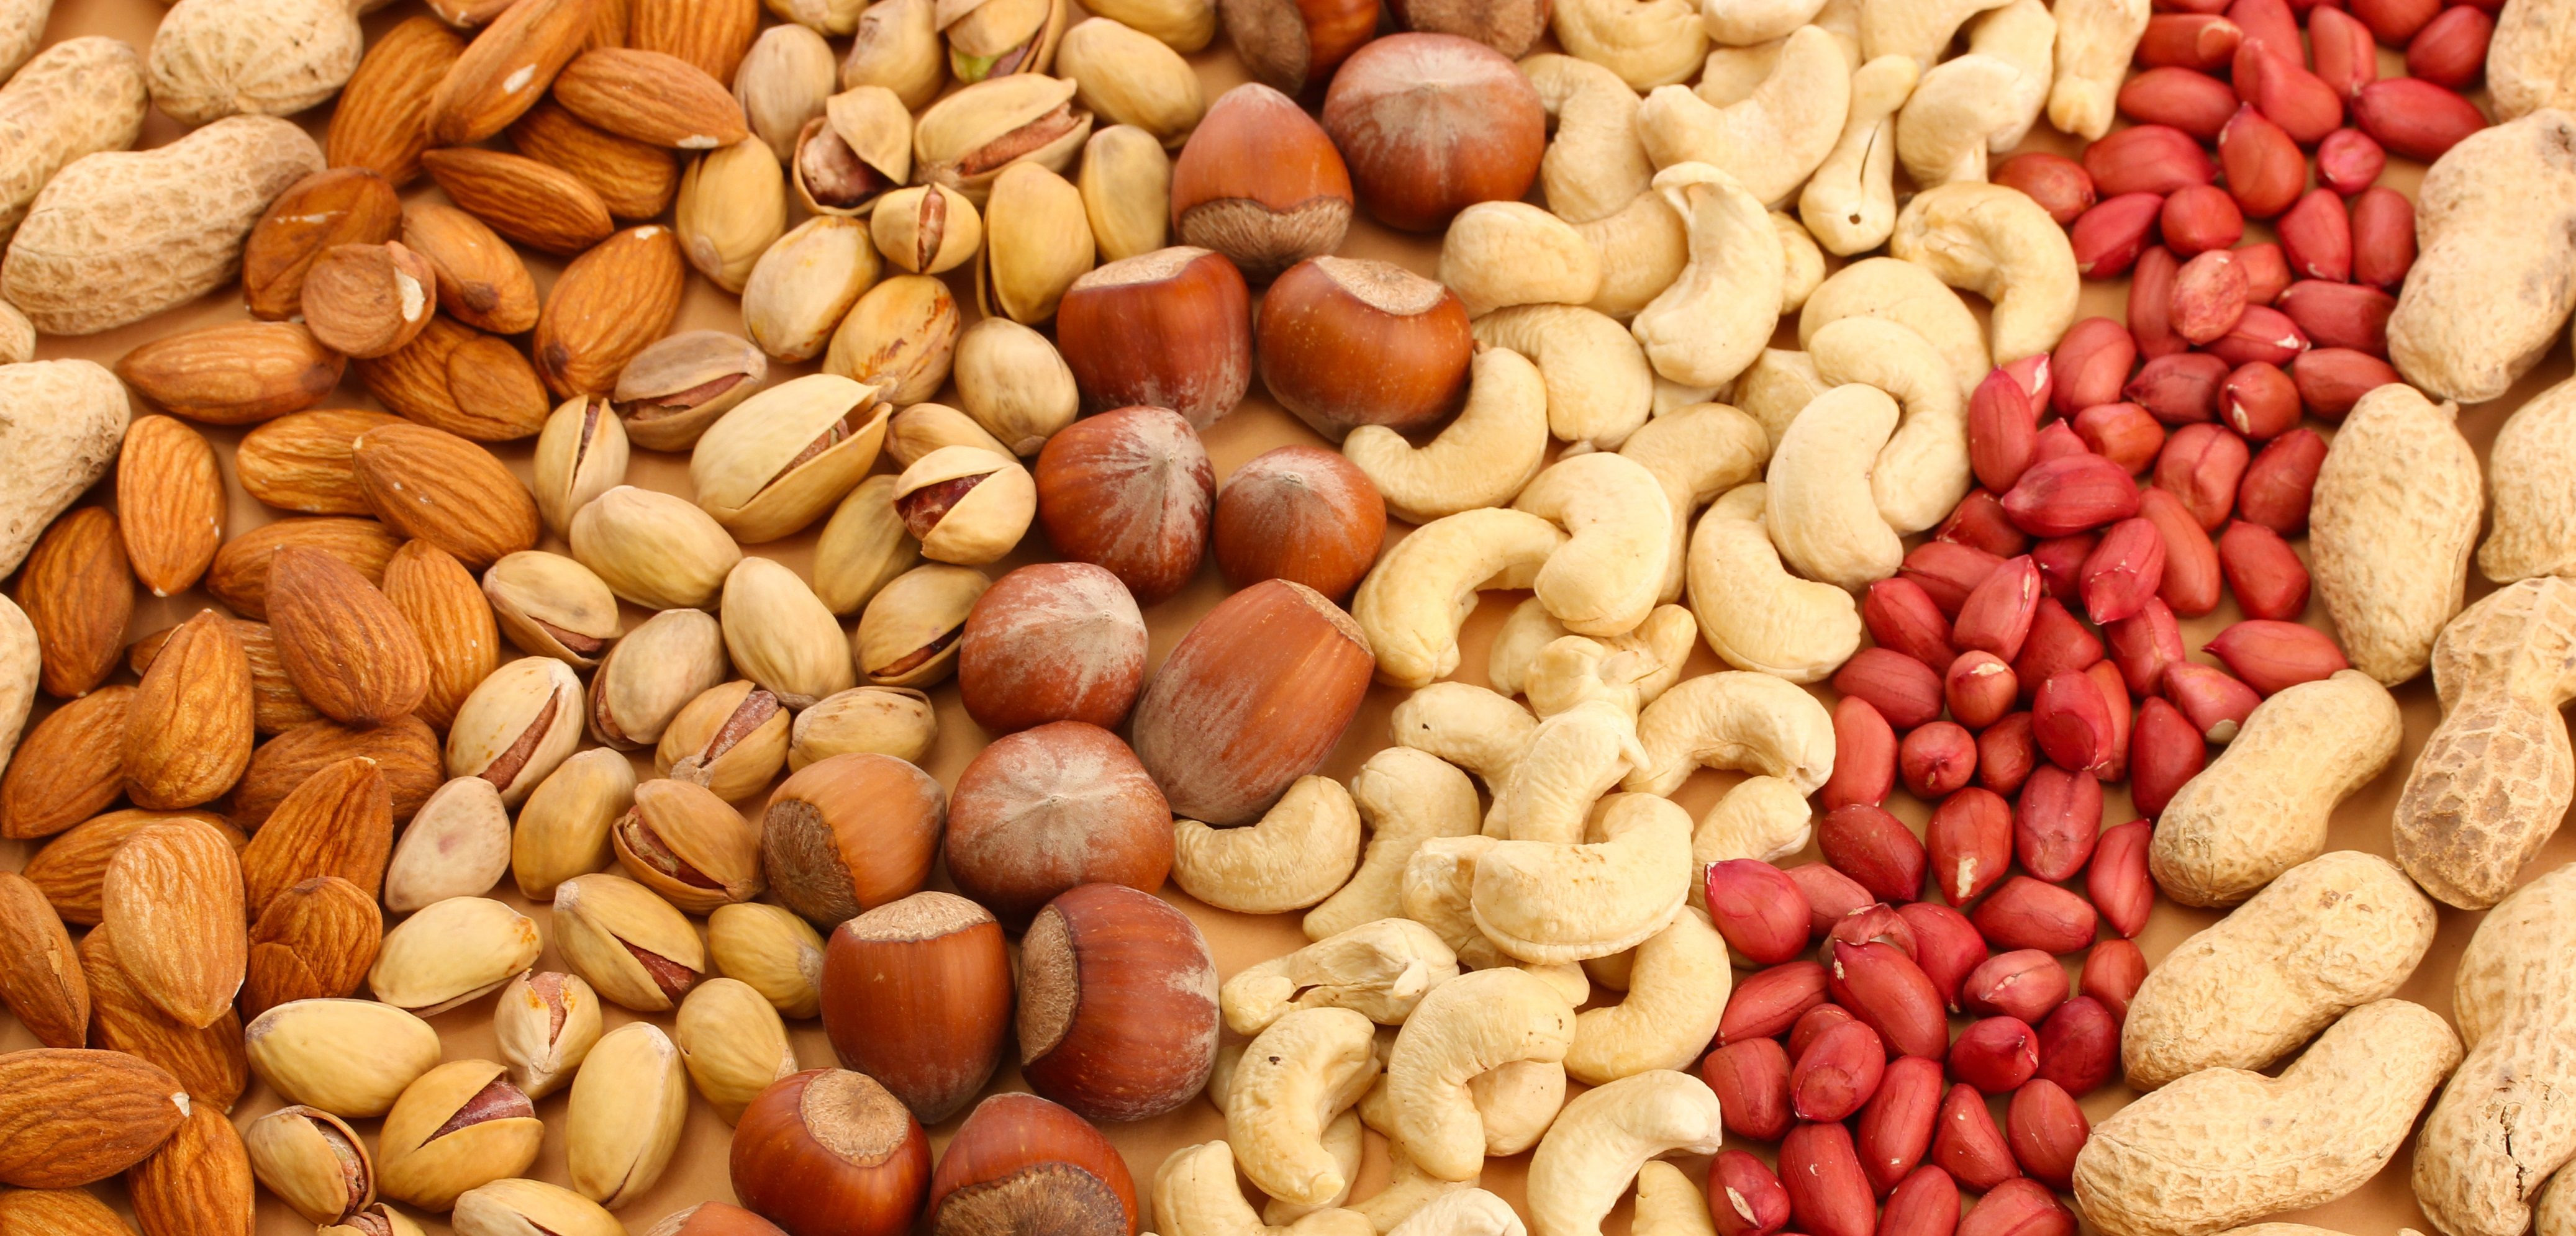 Nuts Wallpapers Images Photos Pictures Backgrounds